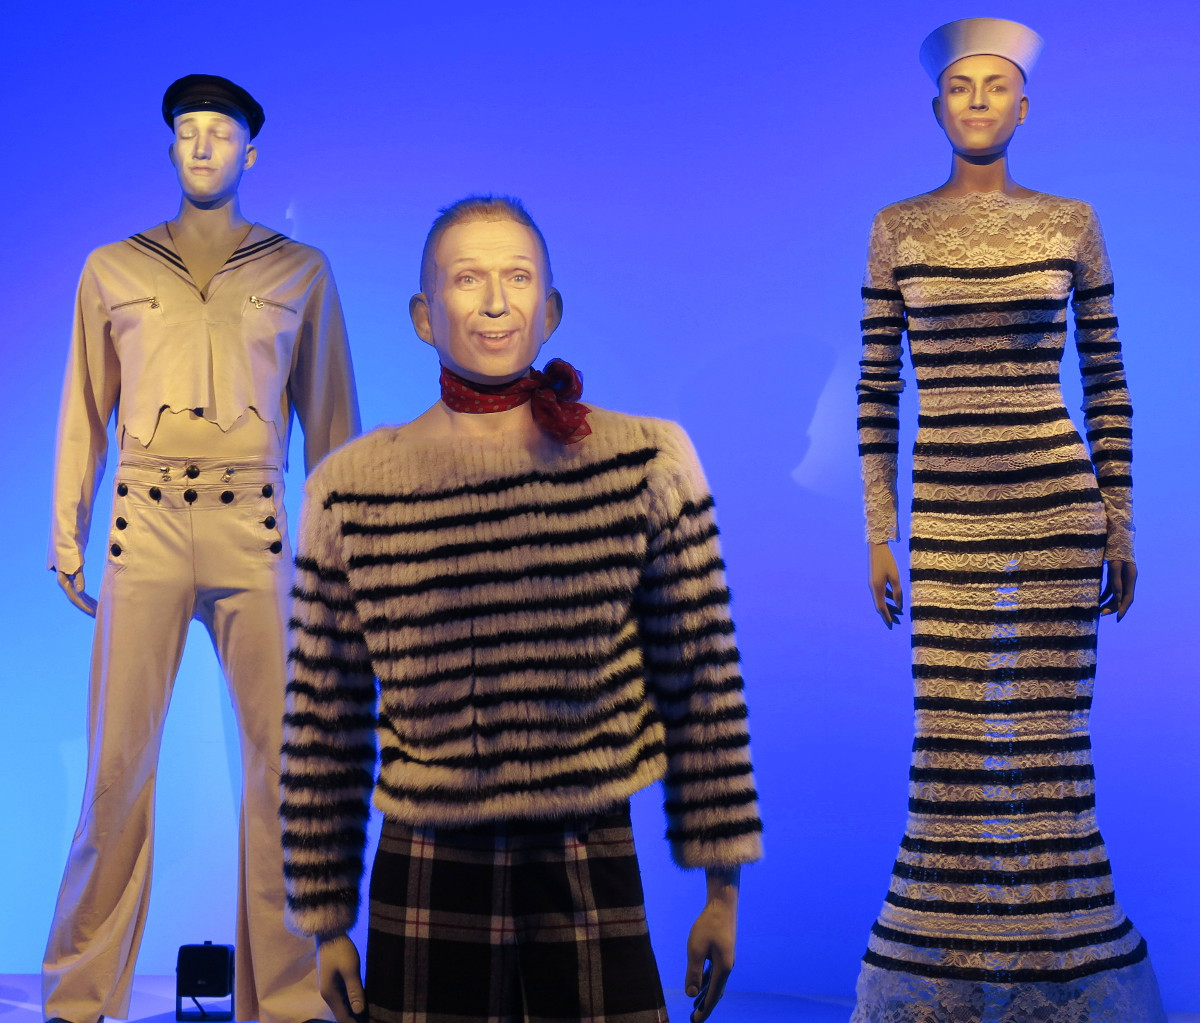 Interactive Jean Paul Gaultier National Gallery of Victoria